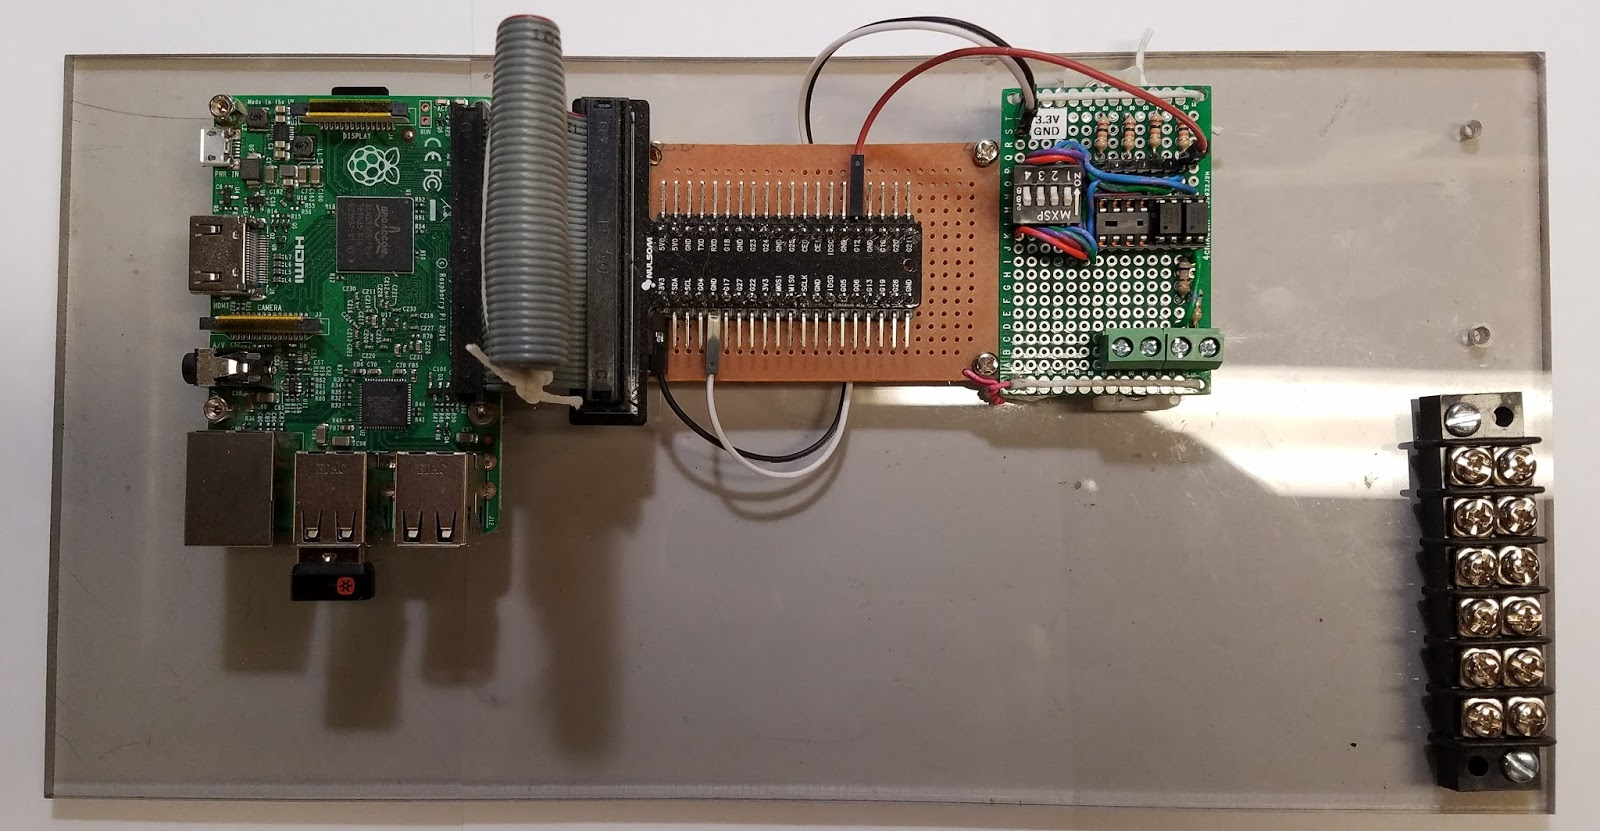 Mad Lab 5 Email Smoke Detector Using Raspberry Pi Sensor Circuit The Basic Concept For This Project Is Based On Fact That When One Of My Detectors Activates It Sends 9 Volts Down A Signal Wire To Let All